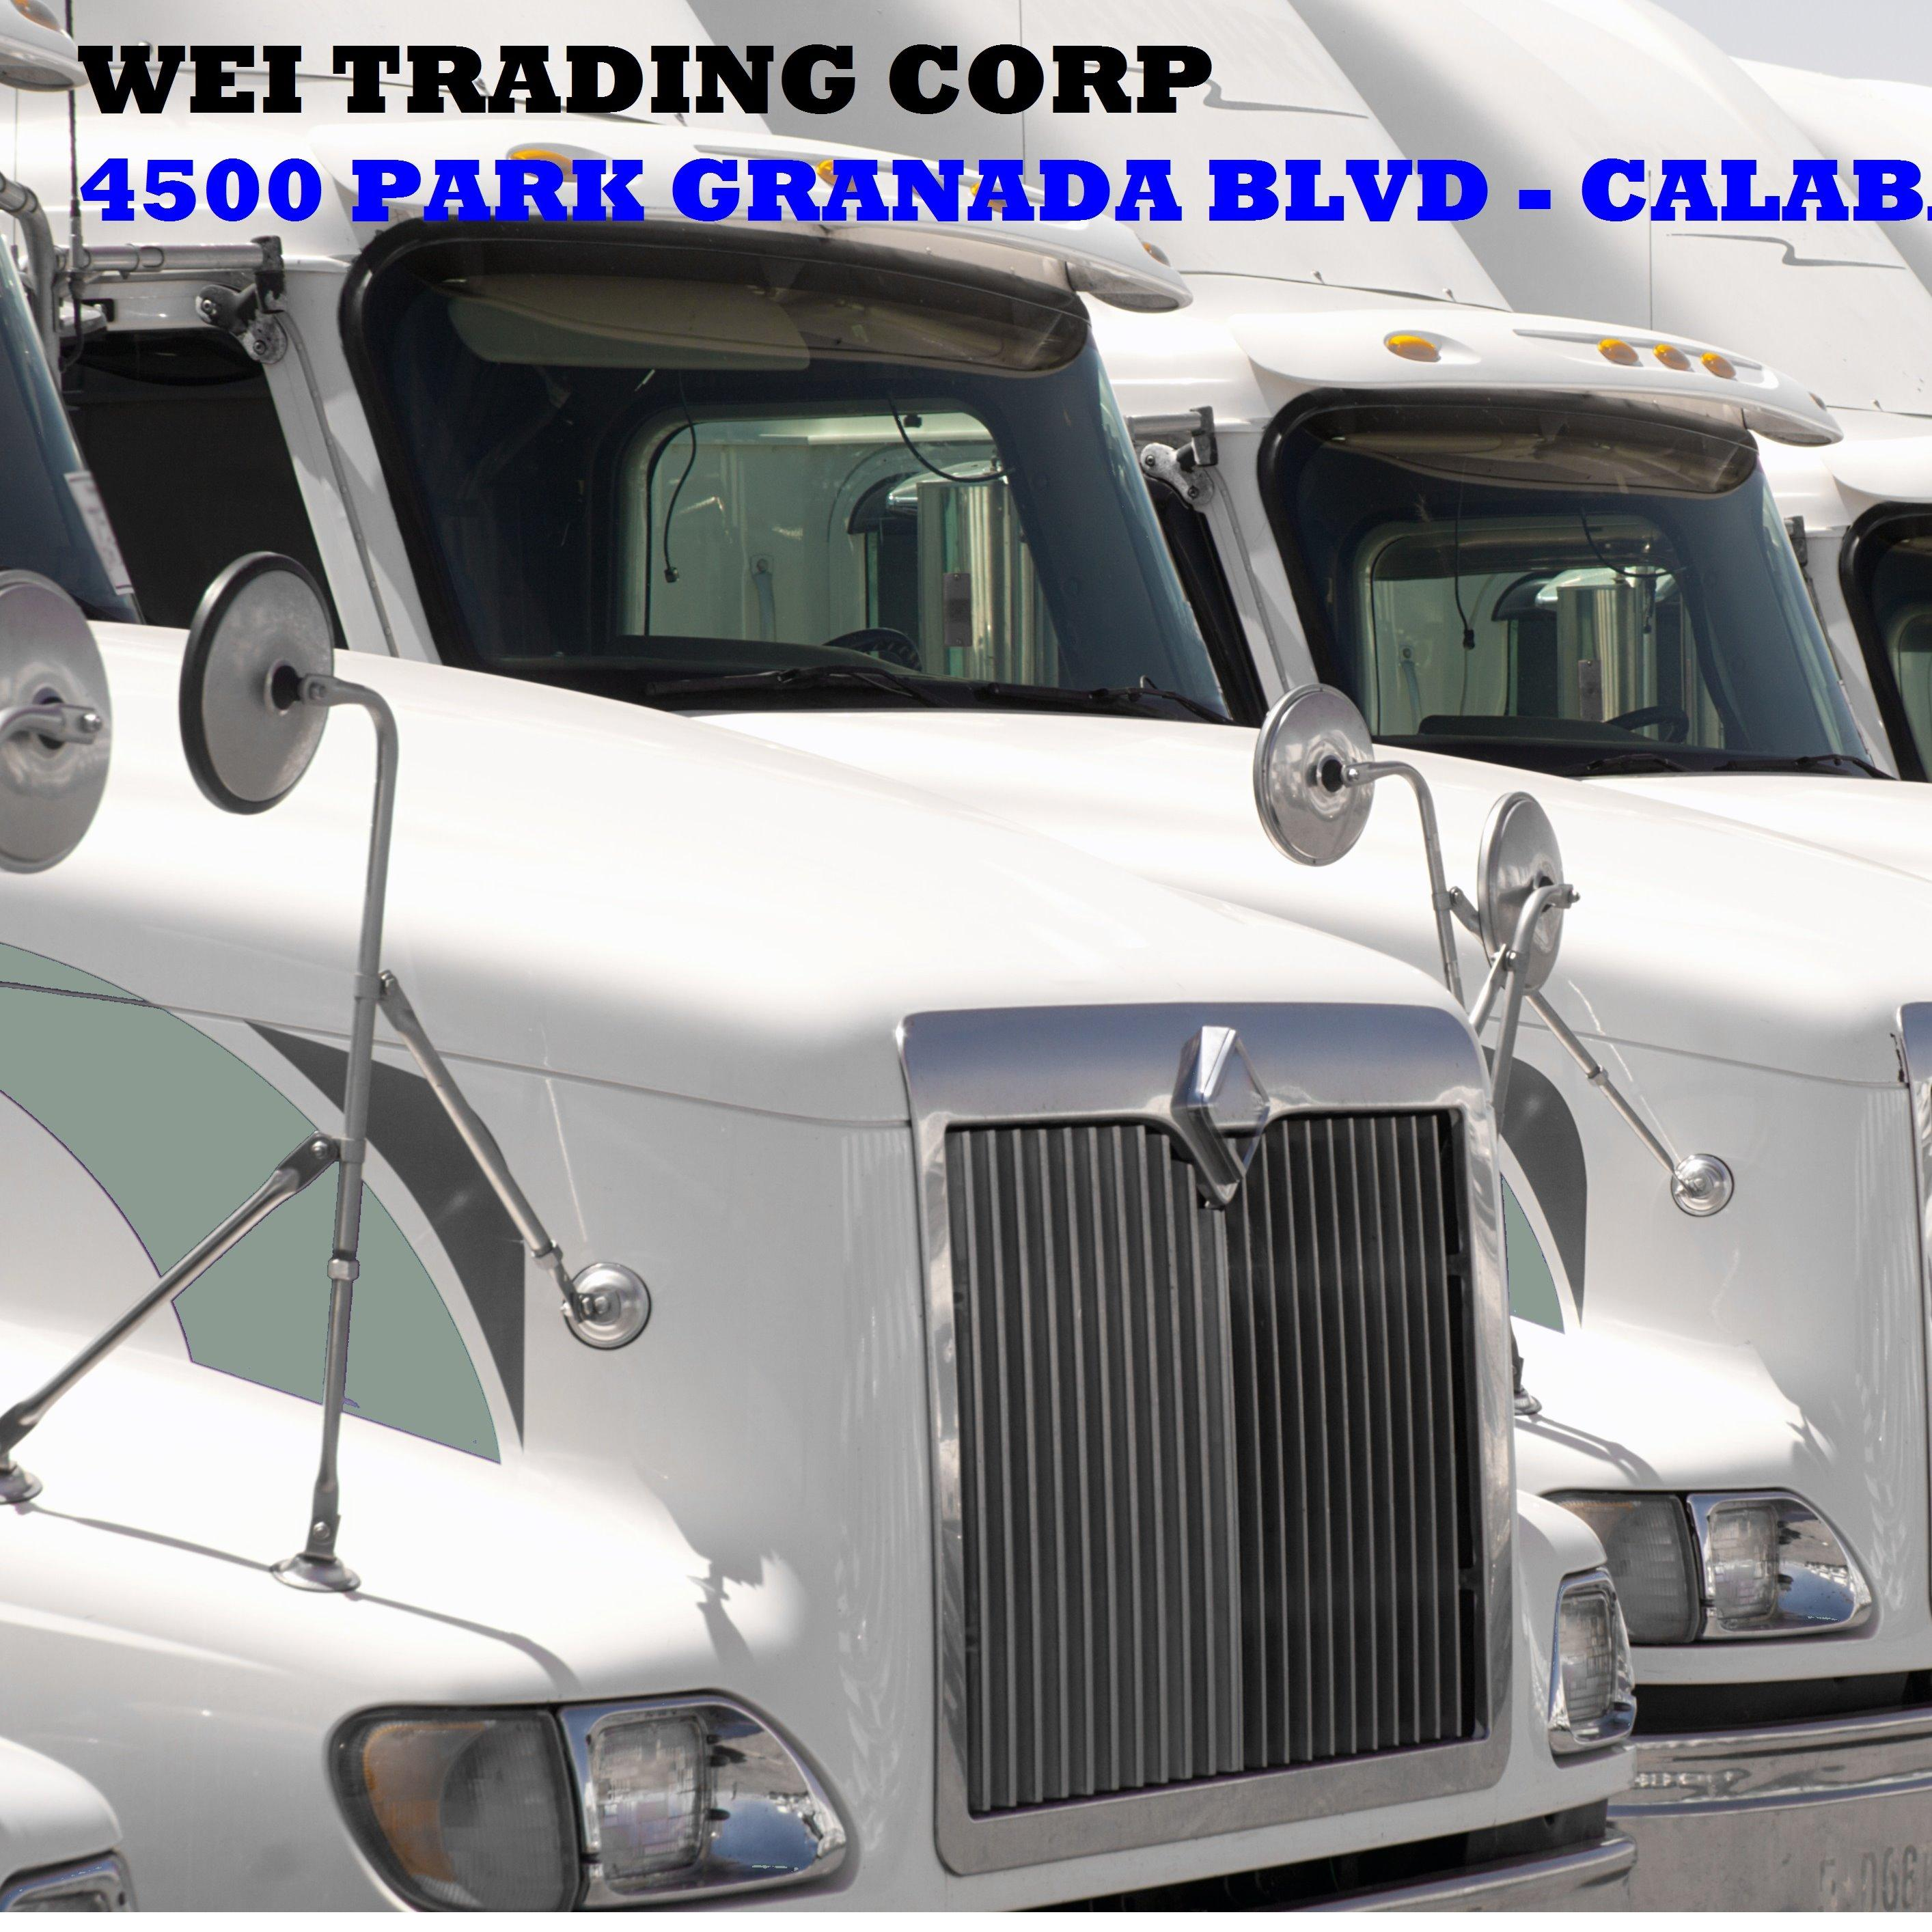 WEI TRADING CORP image 1